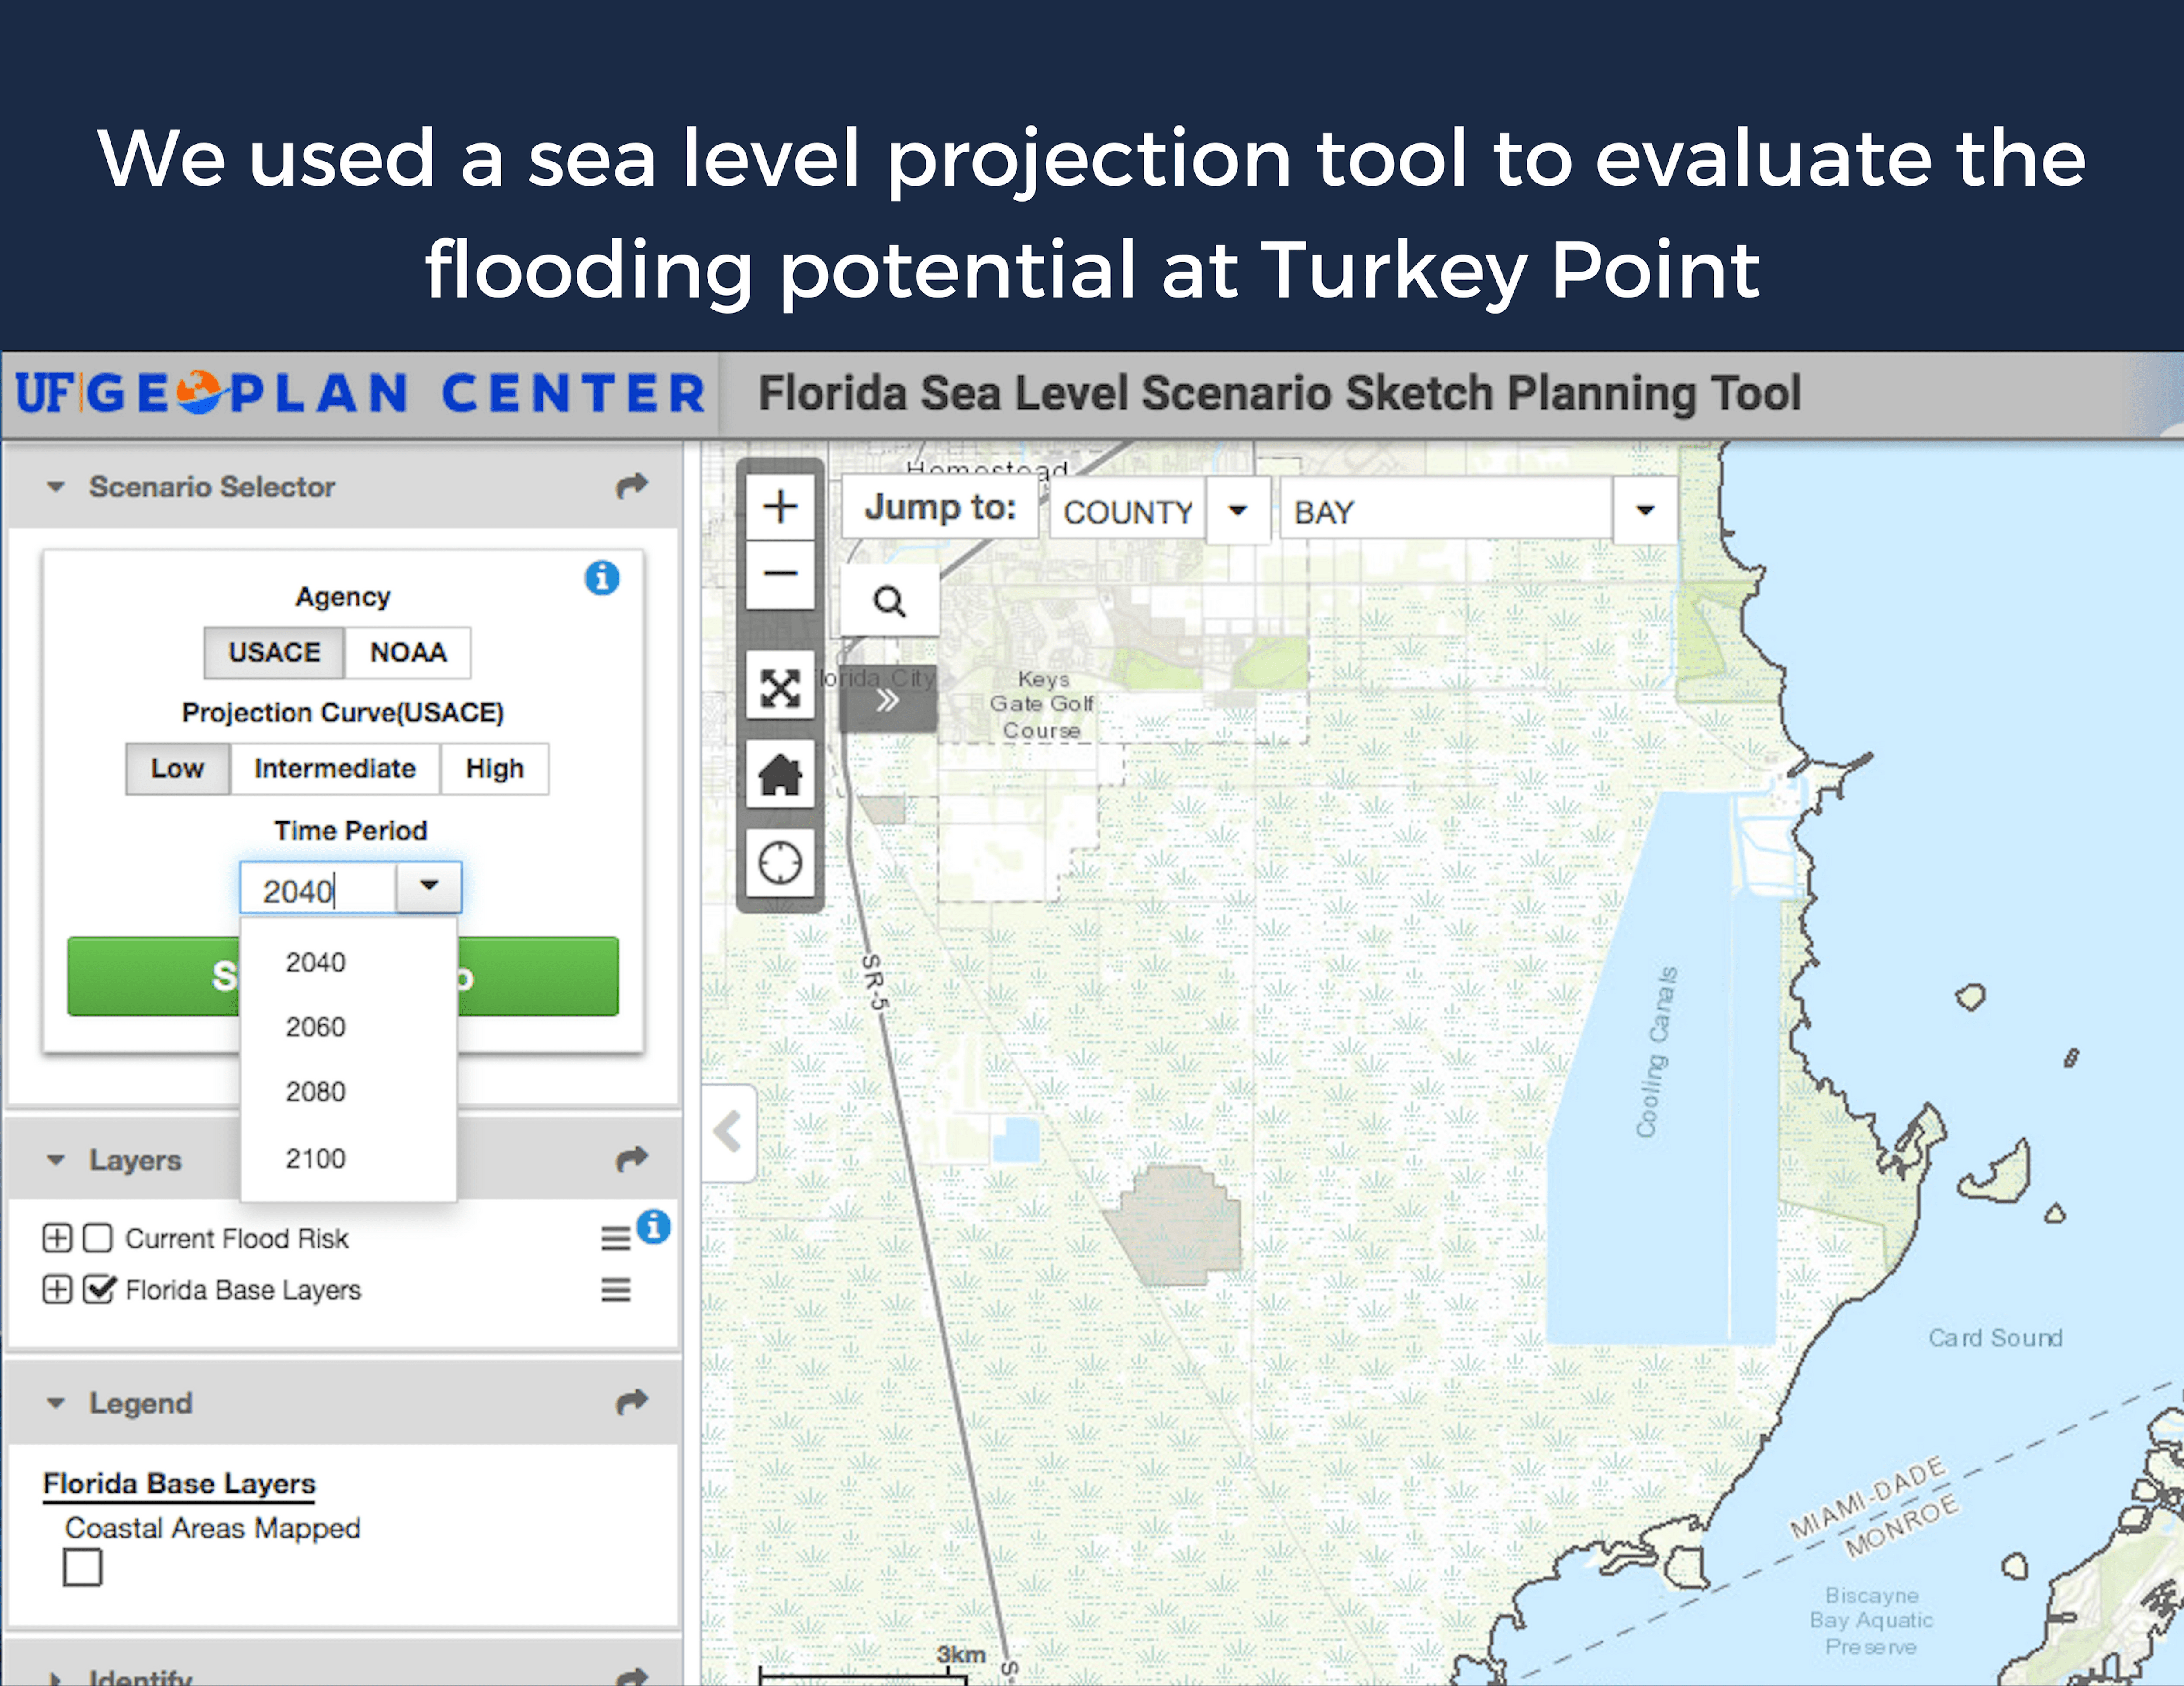 Turkey_Point_projection_maps(1)_(1)-min.png